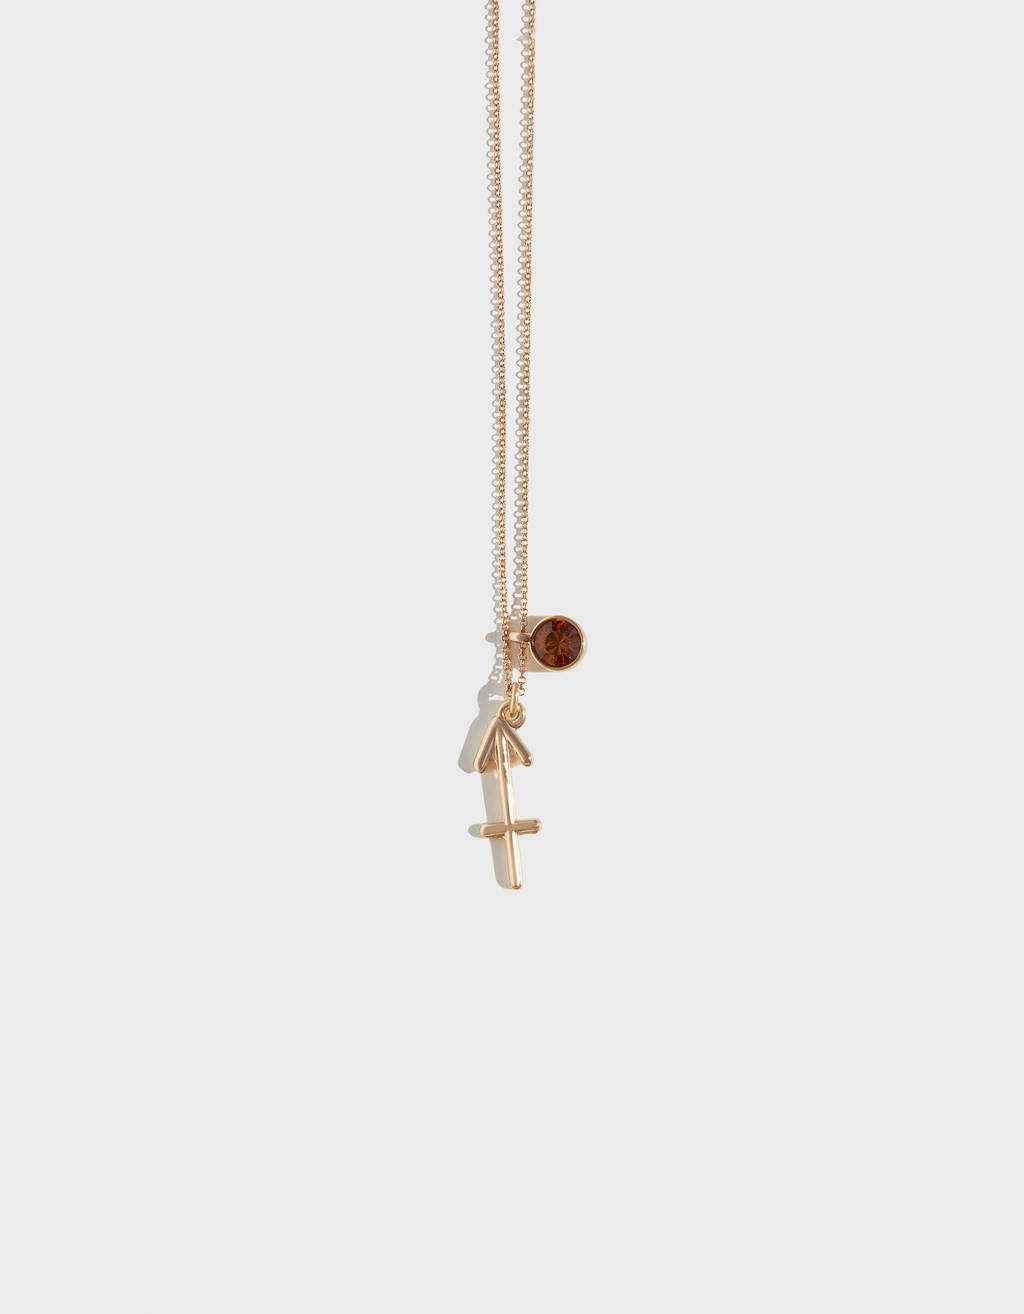 Sagittarius star sign necklace